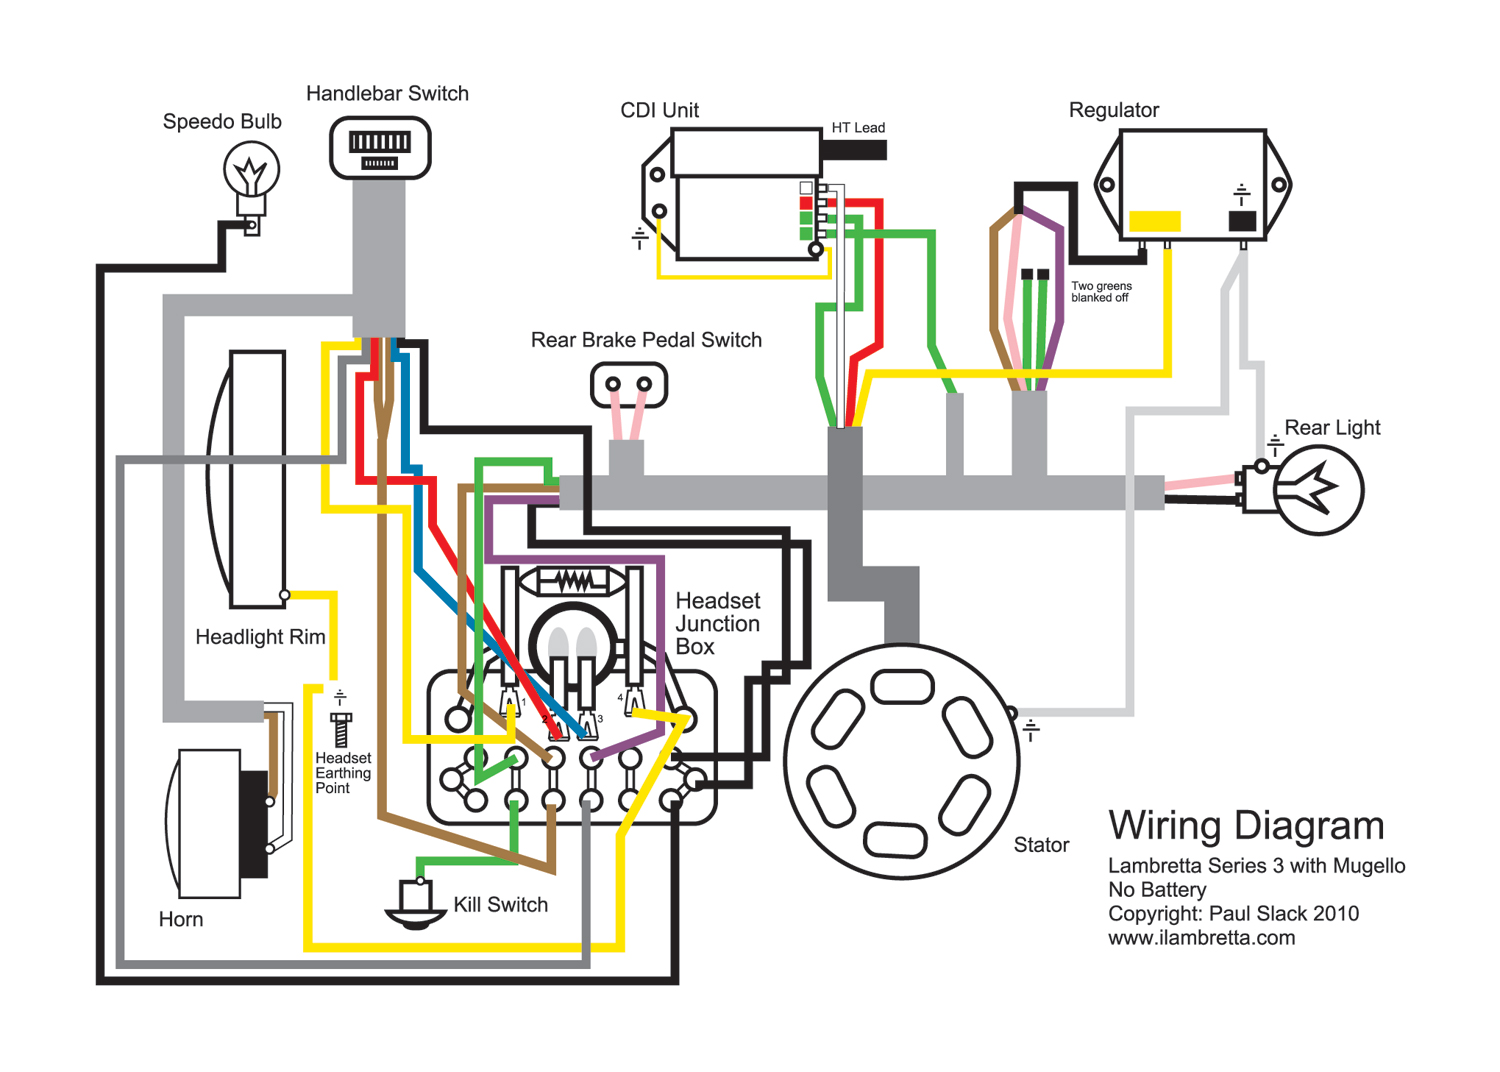 Bmw Ignition Control Module Wiring Harness also Keystone Wiring Diagrams together with What Does Nca Mean On A Wiring Diagram besides Box Costume Free Download Wiring Diagrams Pictures further Pressure Ulcer Diagram. on ricon wiring diagrams